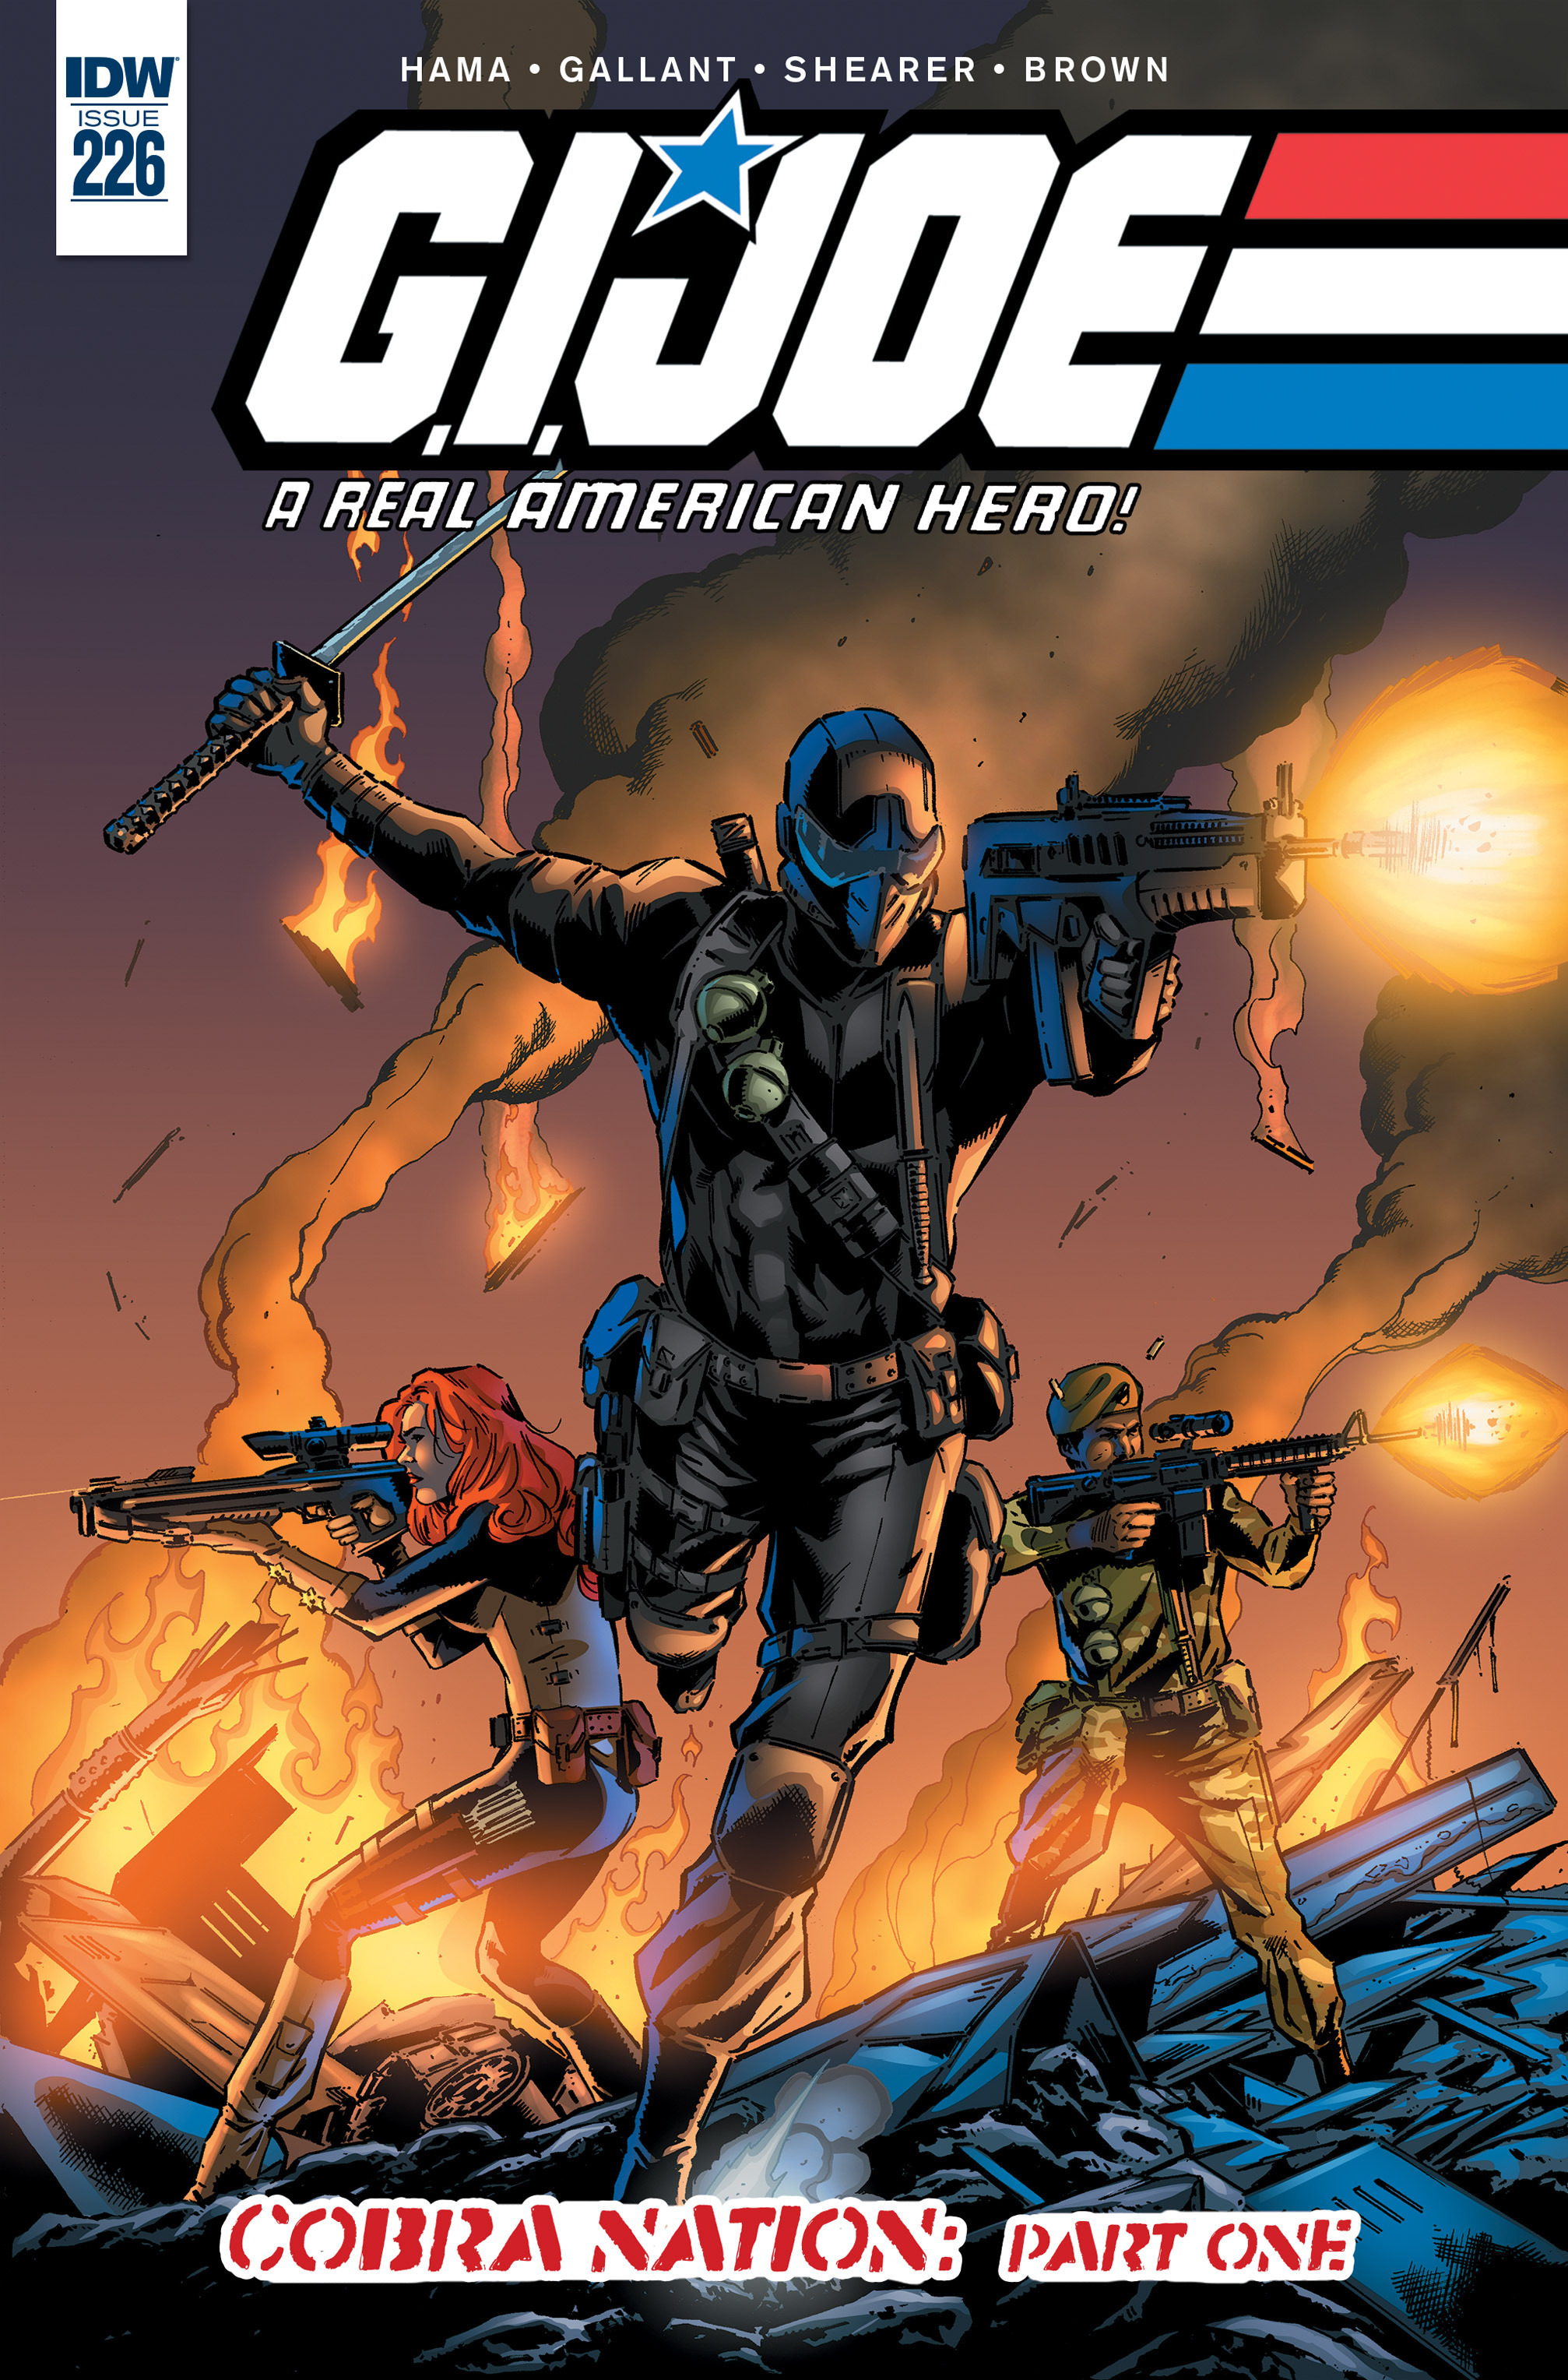 G.I. Joe: A Real American Hero 226 Page 1